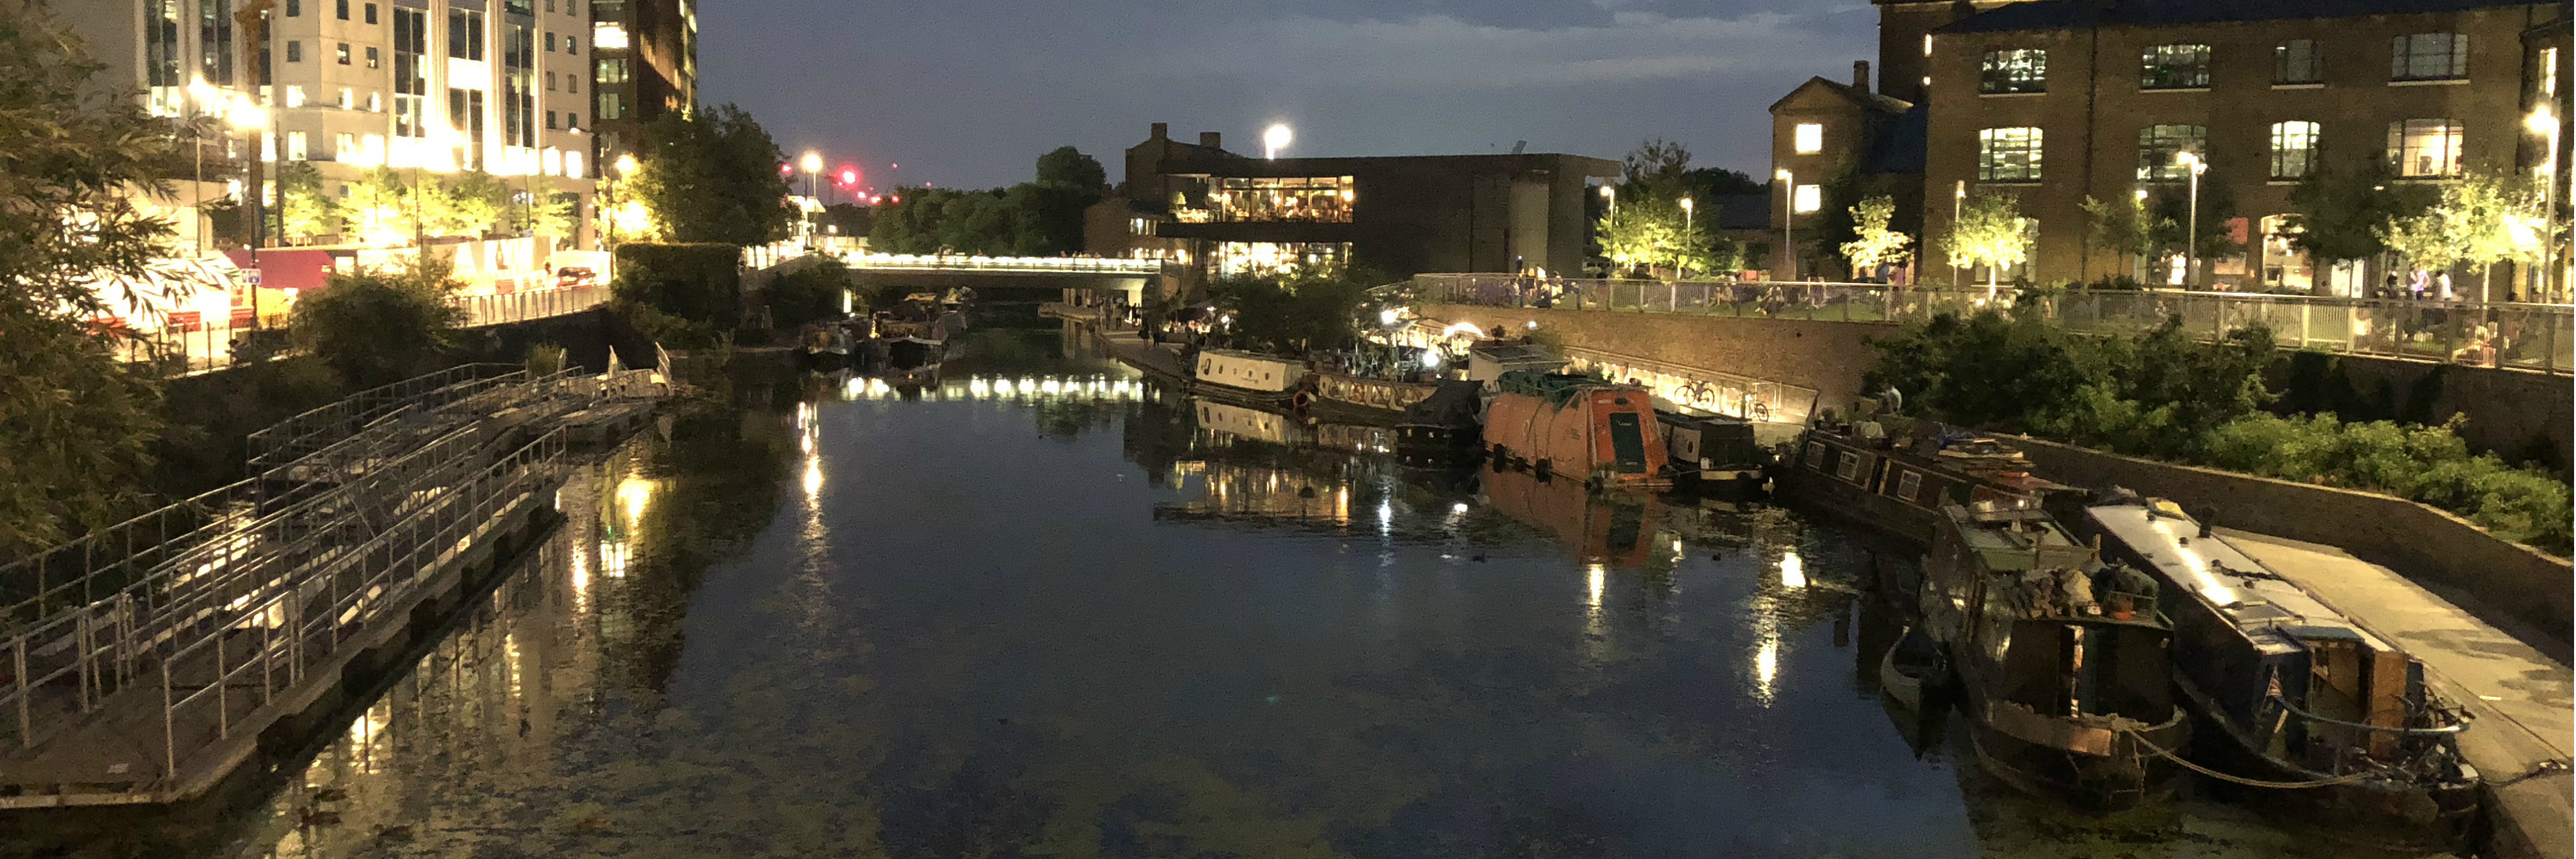 waterways: Regents canal looking at Granary Square